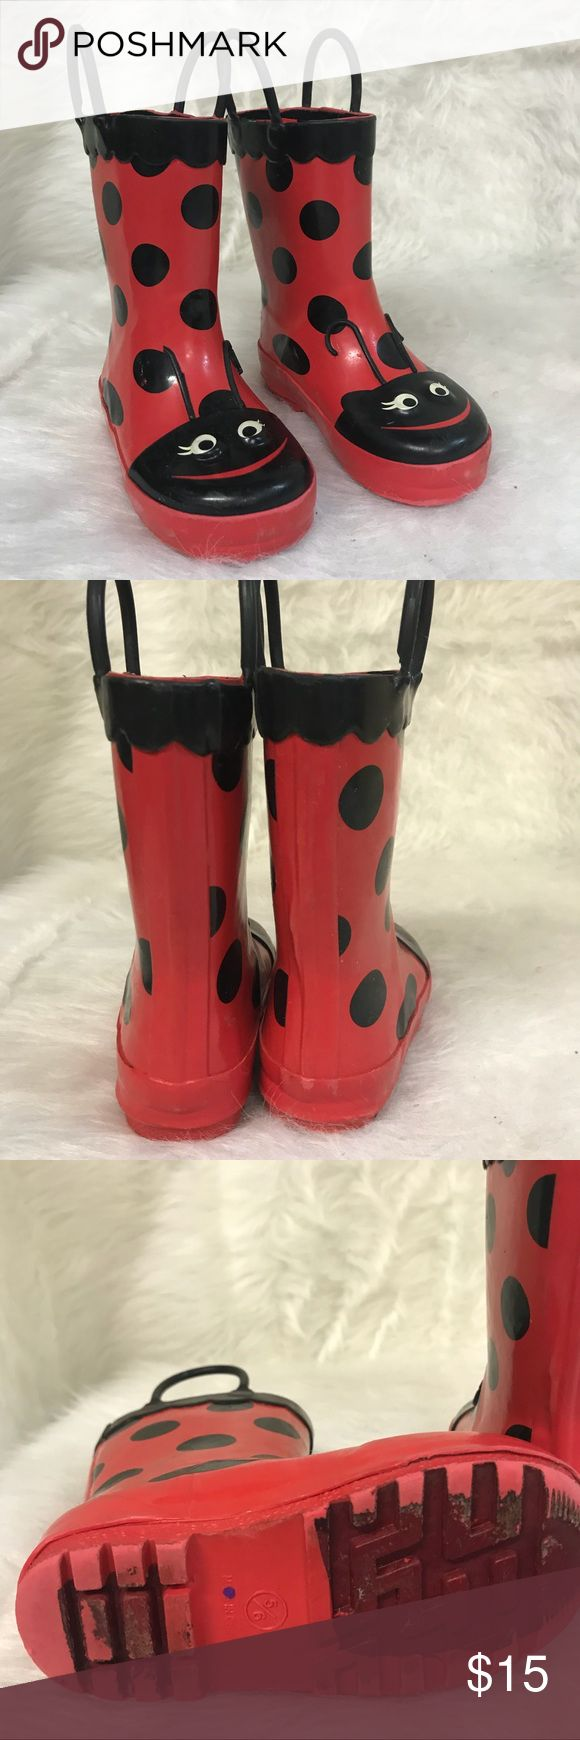 Ladybug girls rain boots Target 5/6 Size 5/6 Rain boots in good condition. Made by target Target Shoes Rain & Snow Boots